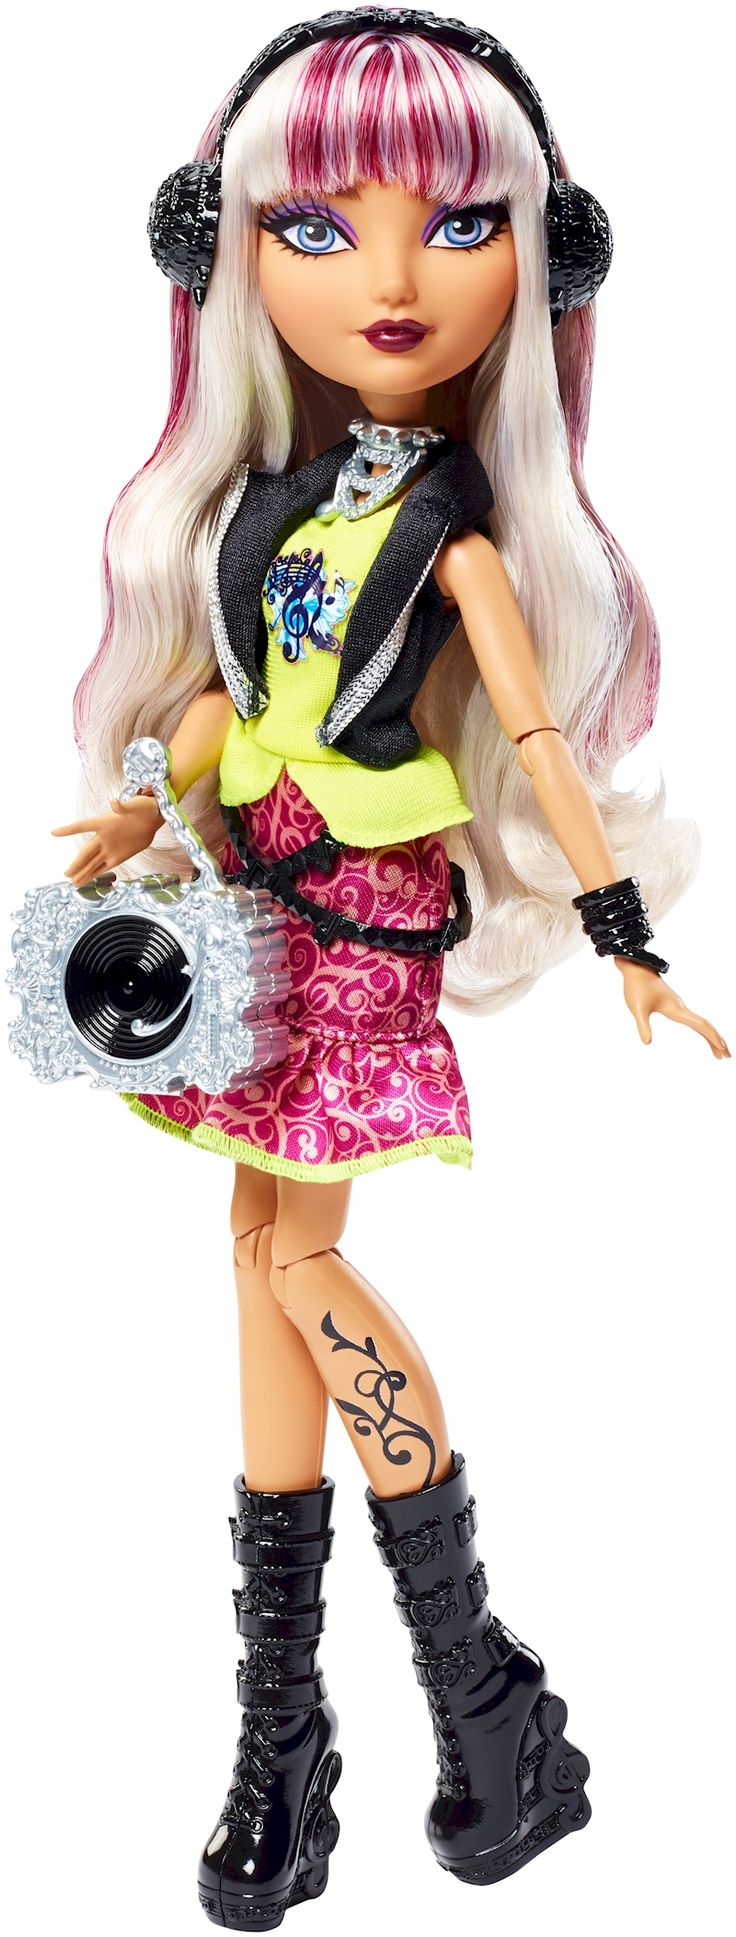 Ever After Rebel™ Melody Piper™ Doll - Shop Ever After High Fashion Dolls, Playsets & Toys | Ever After High